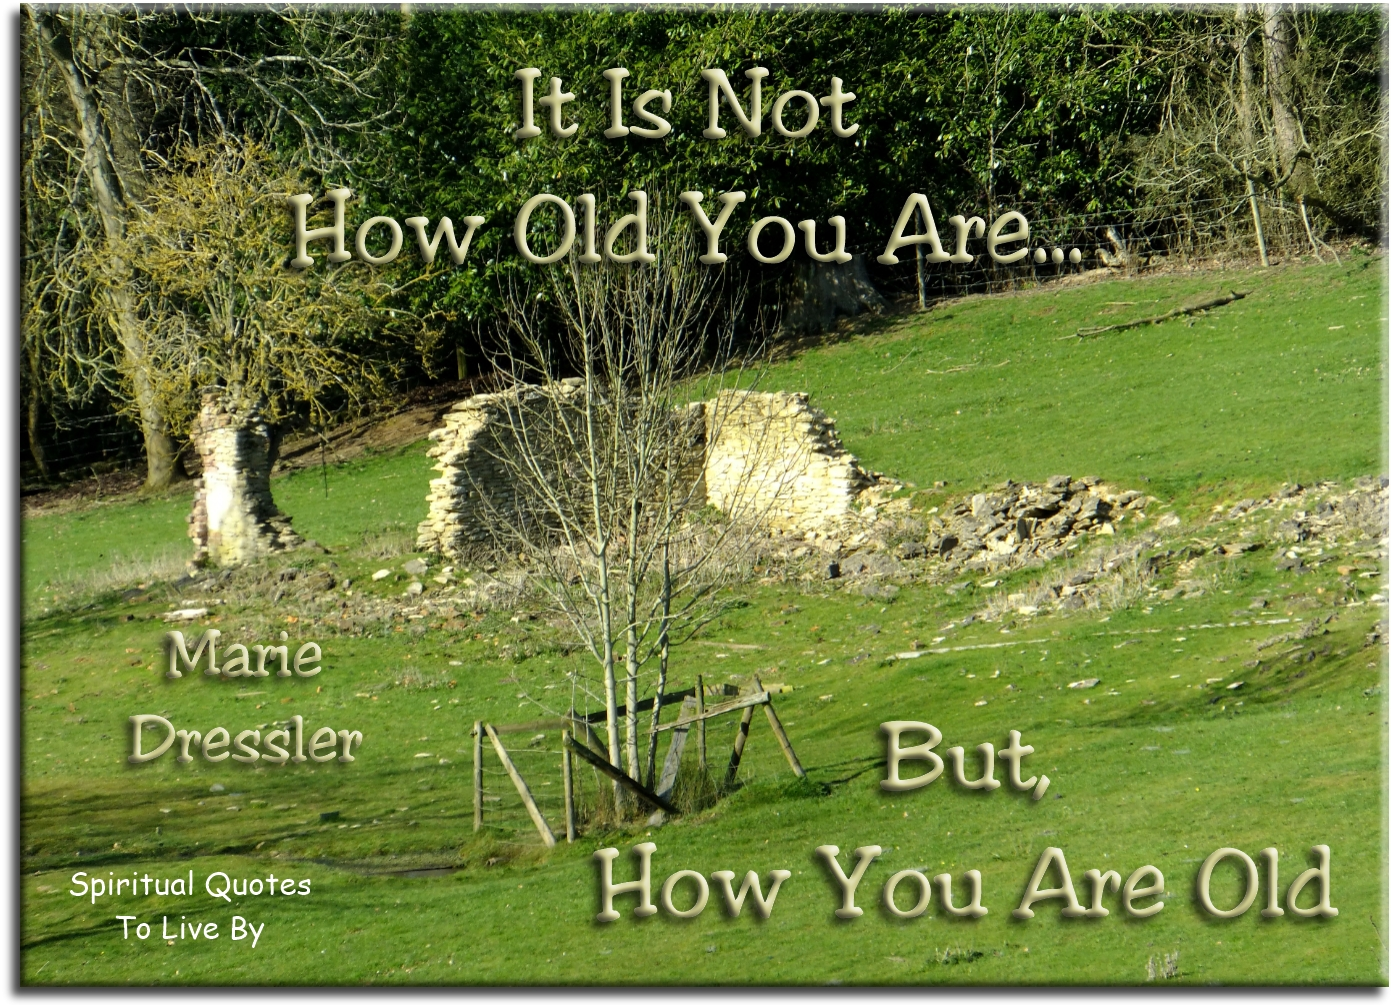 Marie Dressler quote: It is not how old you are... but how you are old. Spiritual Quotes To Live By